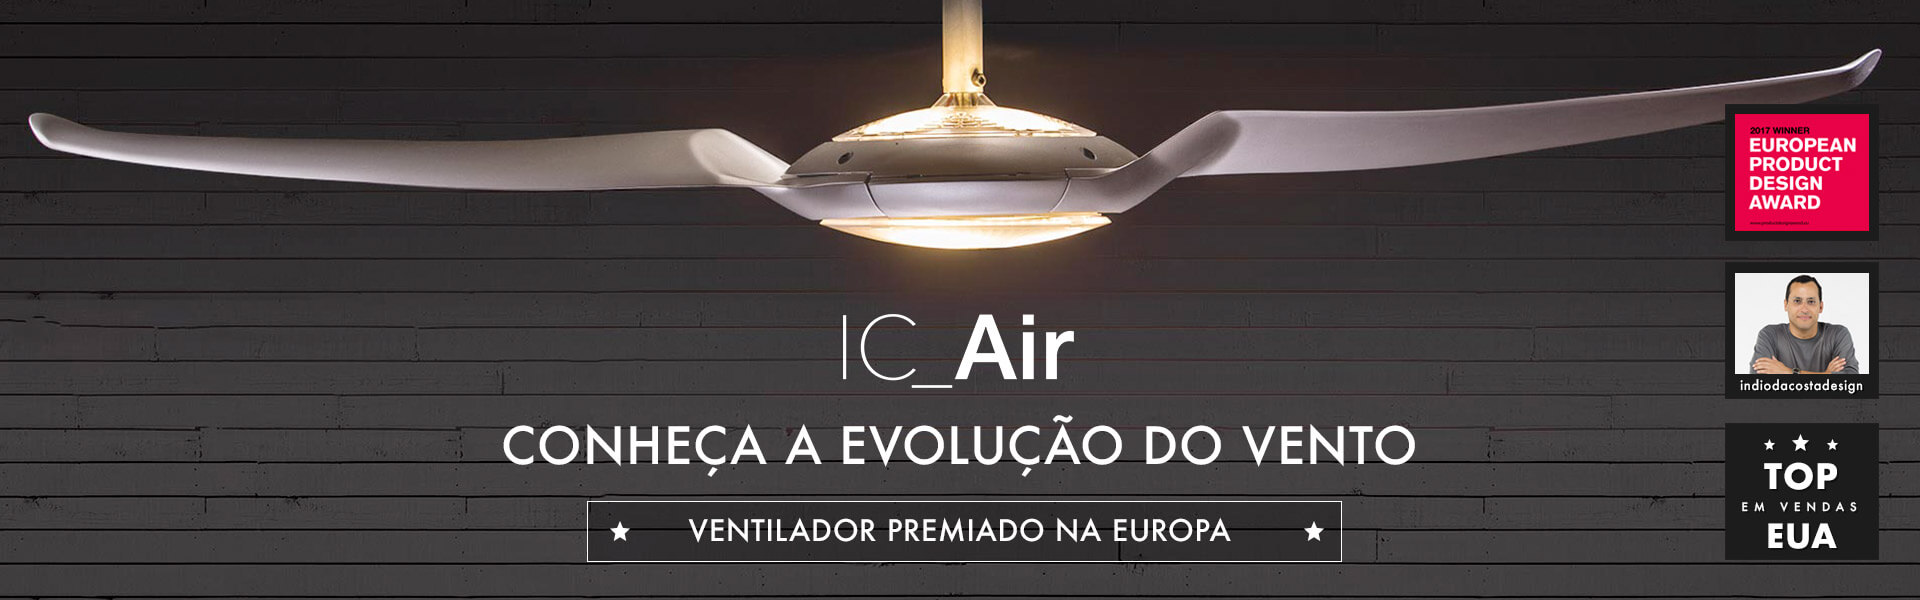 IC-AIR - A Evolução do Ventilador de Teto